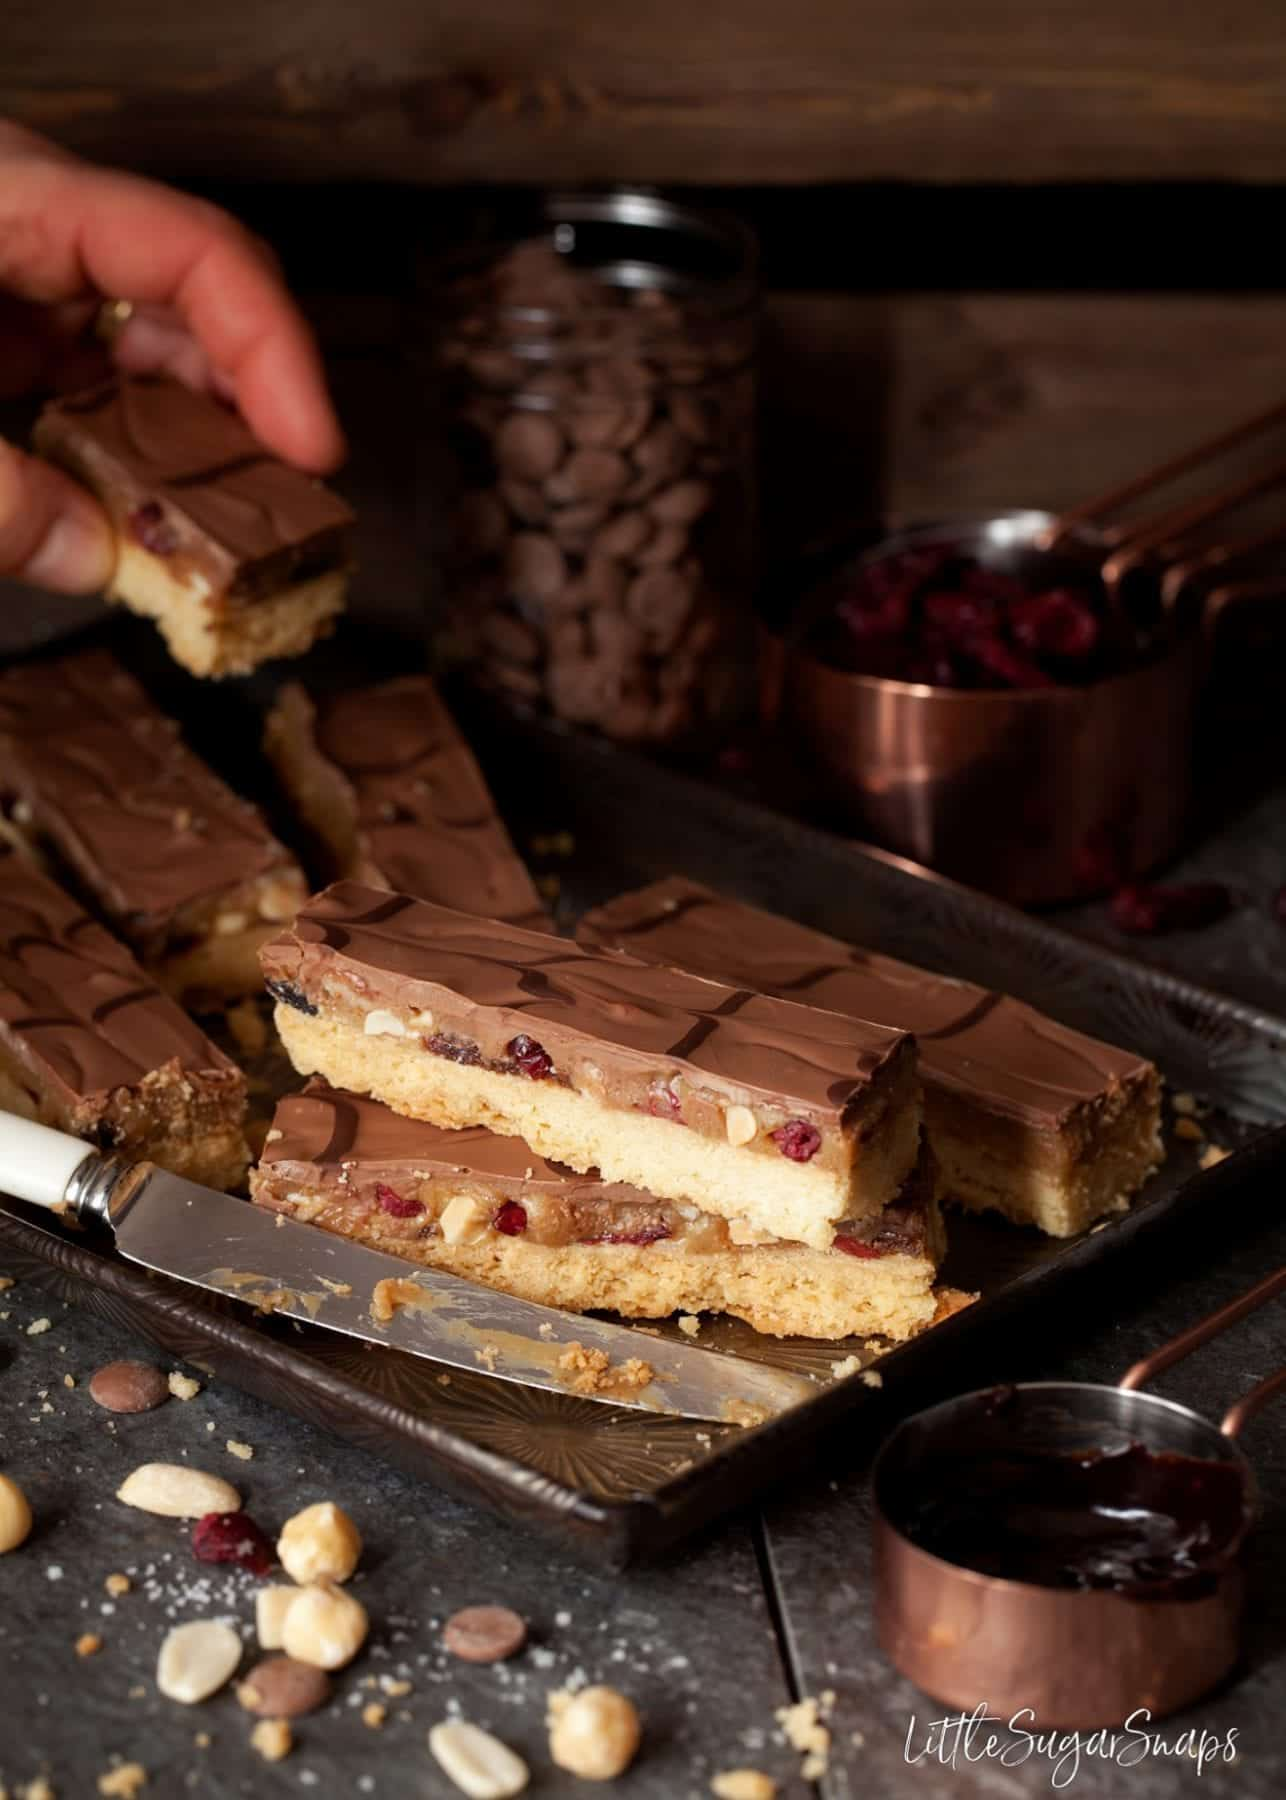 millionaire's shortbread bars on a vintage baking tray. Person taking a slice